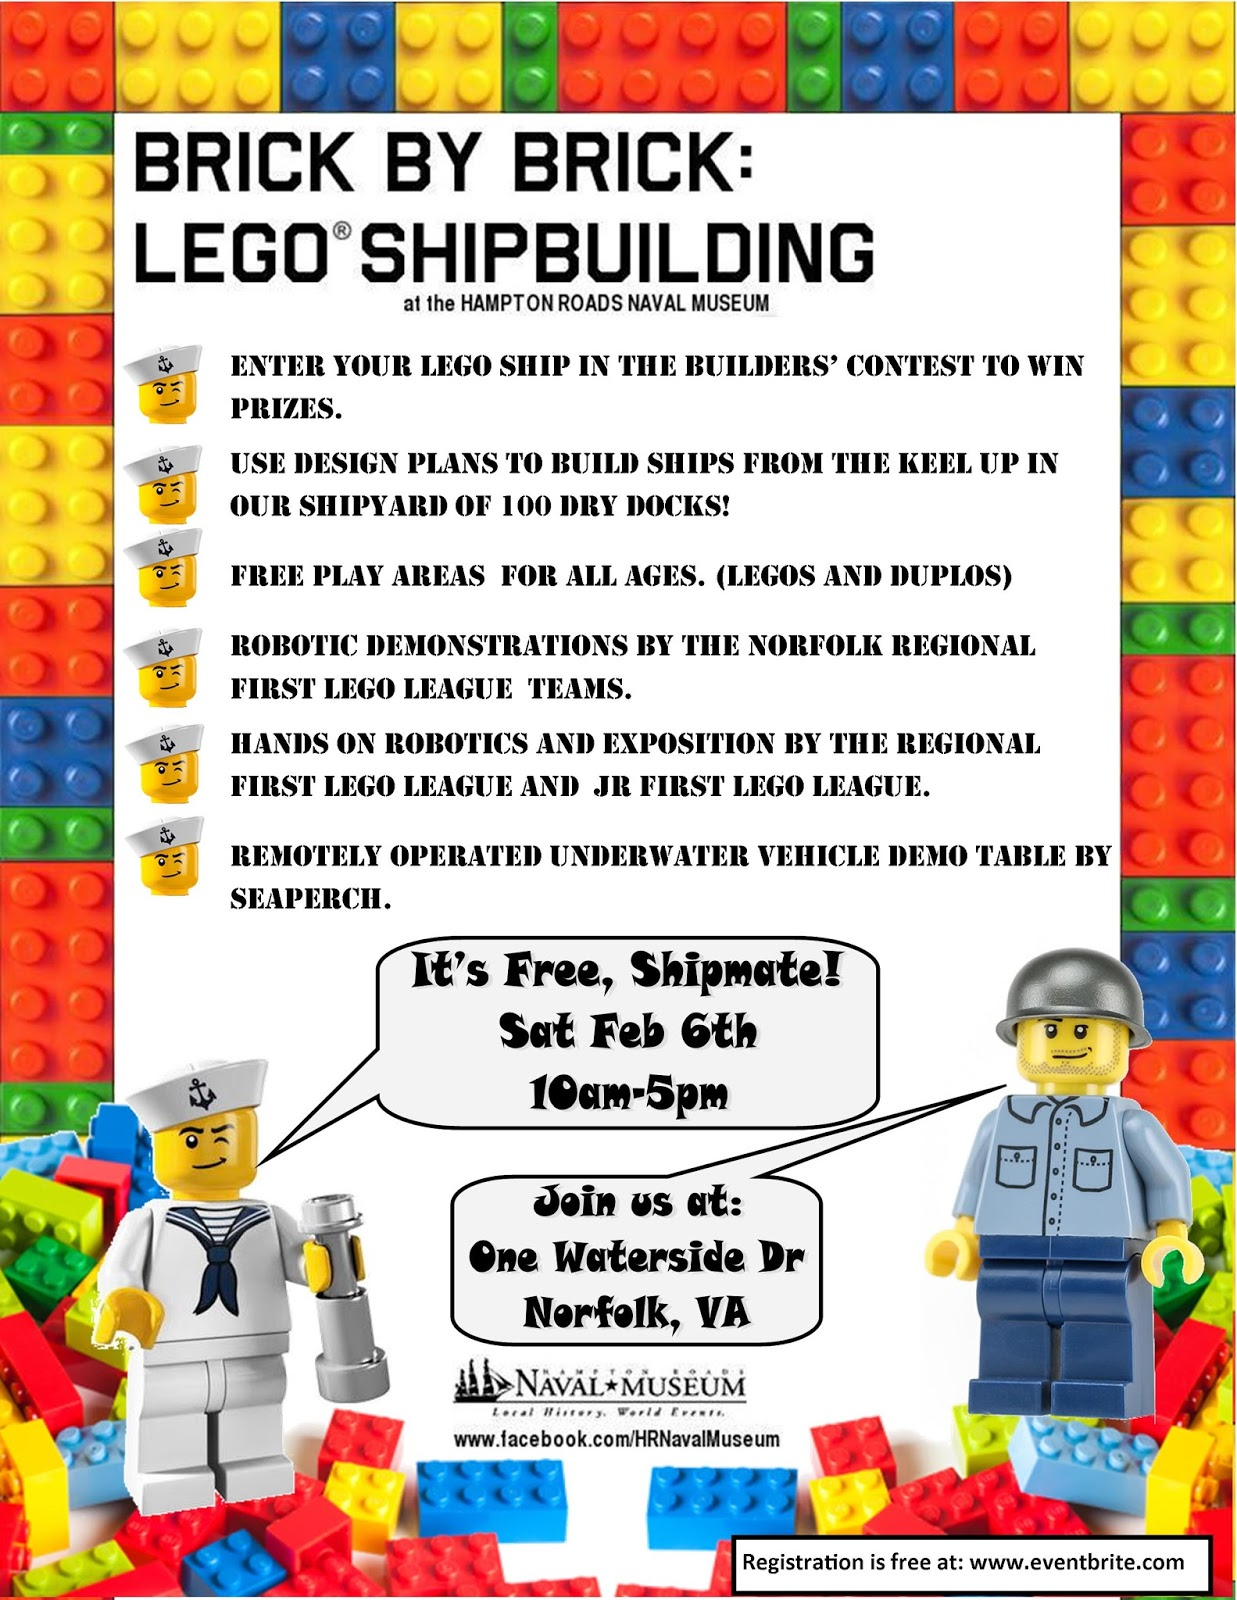 Legos For Free Hampton Roads Naval Museum The 5th Annual Brick By Brick Lego